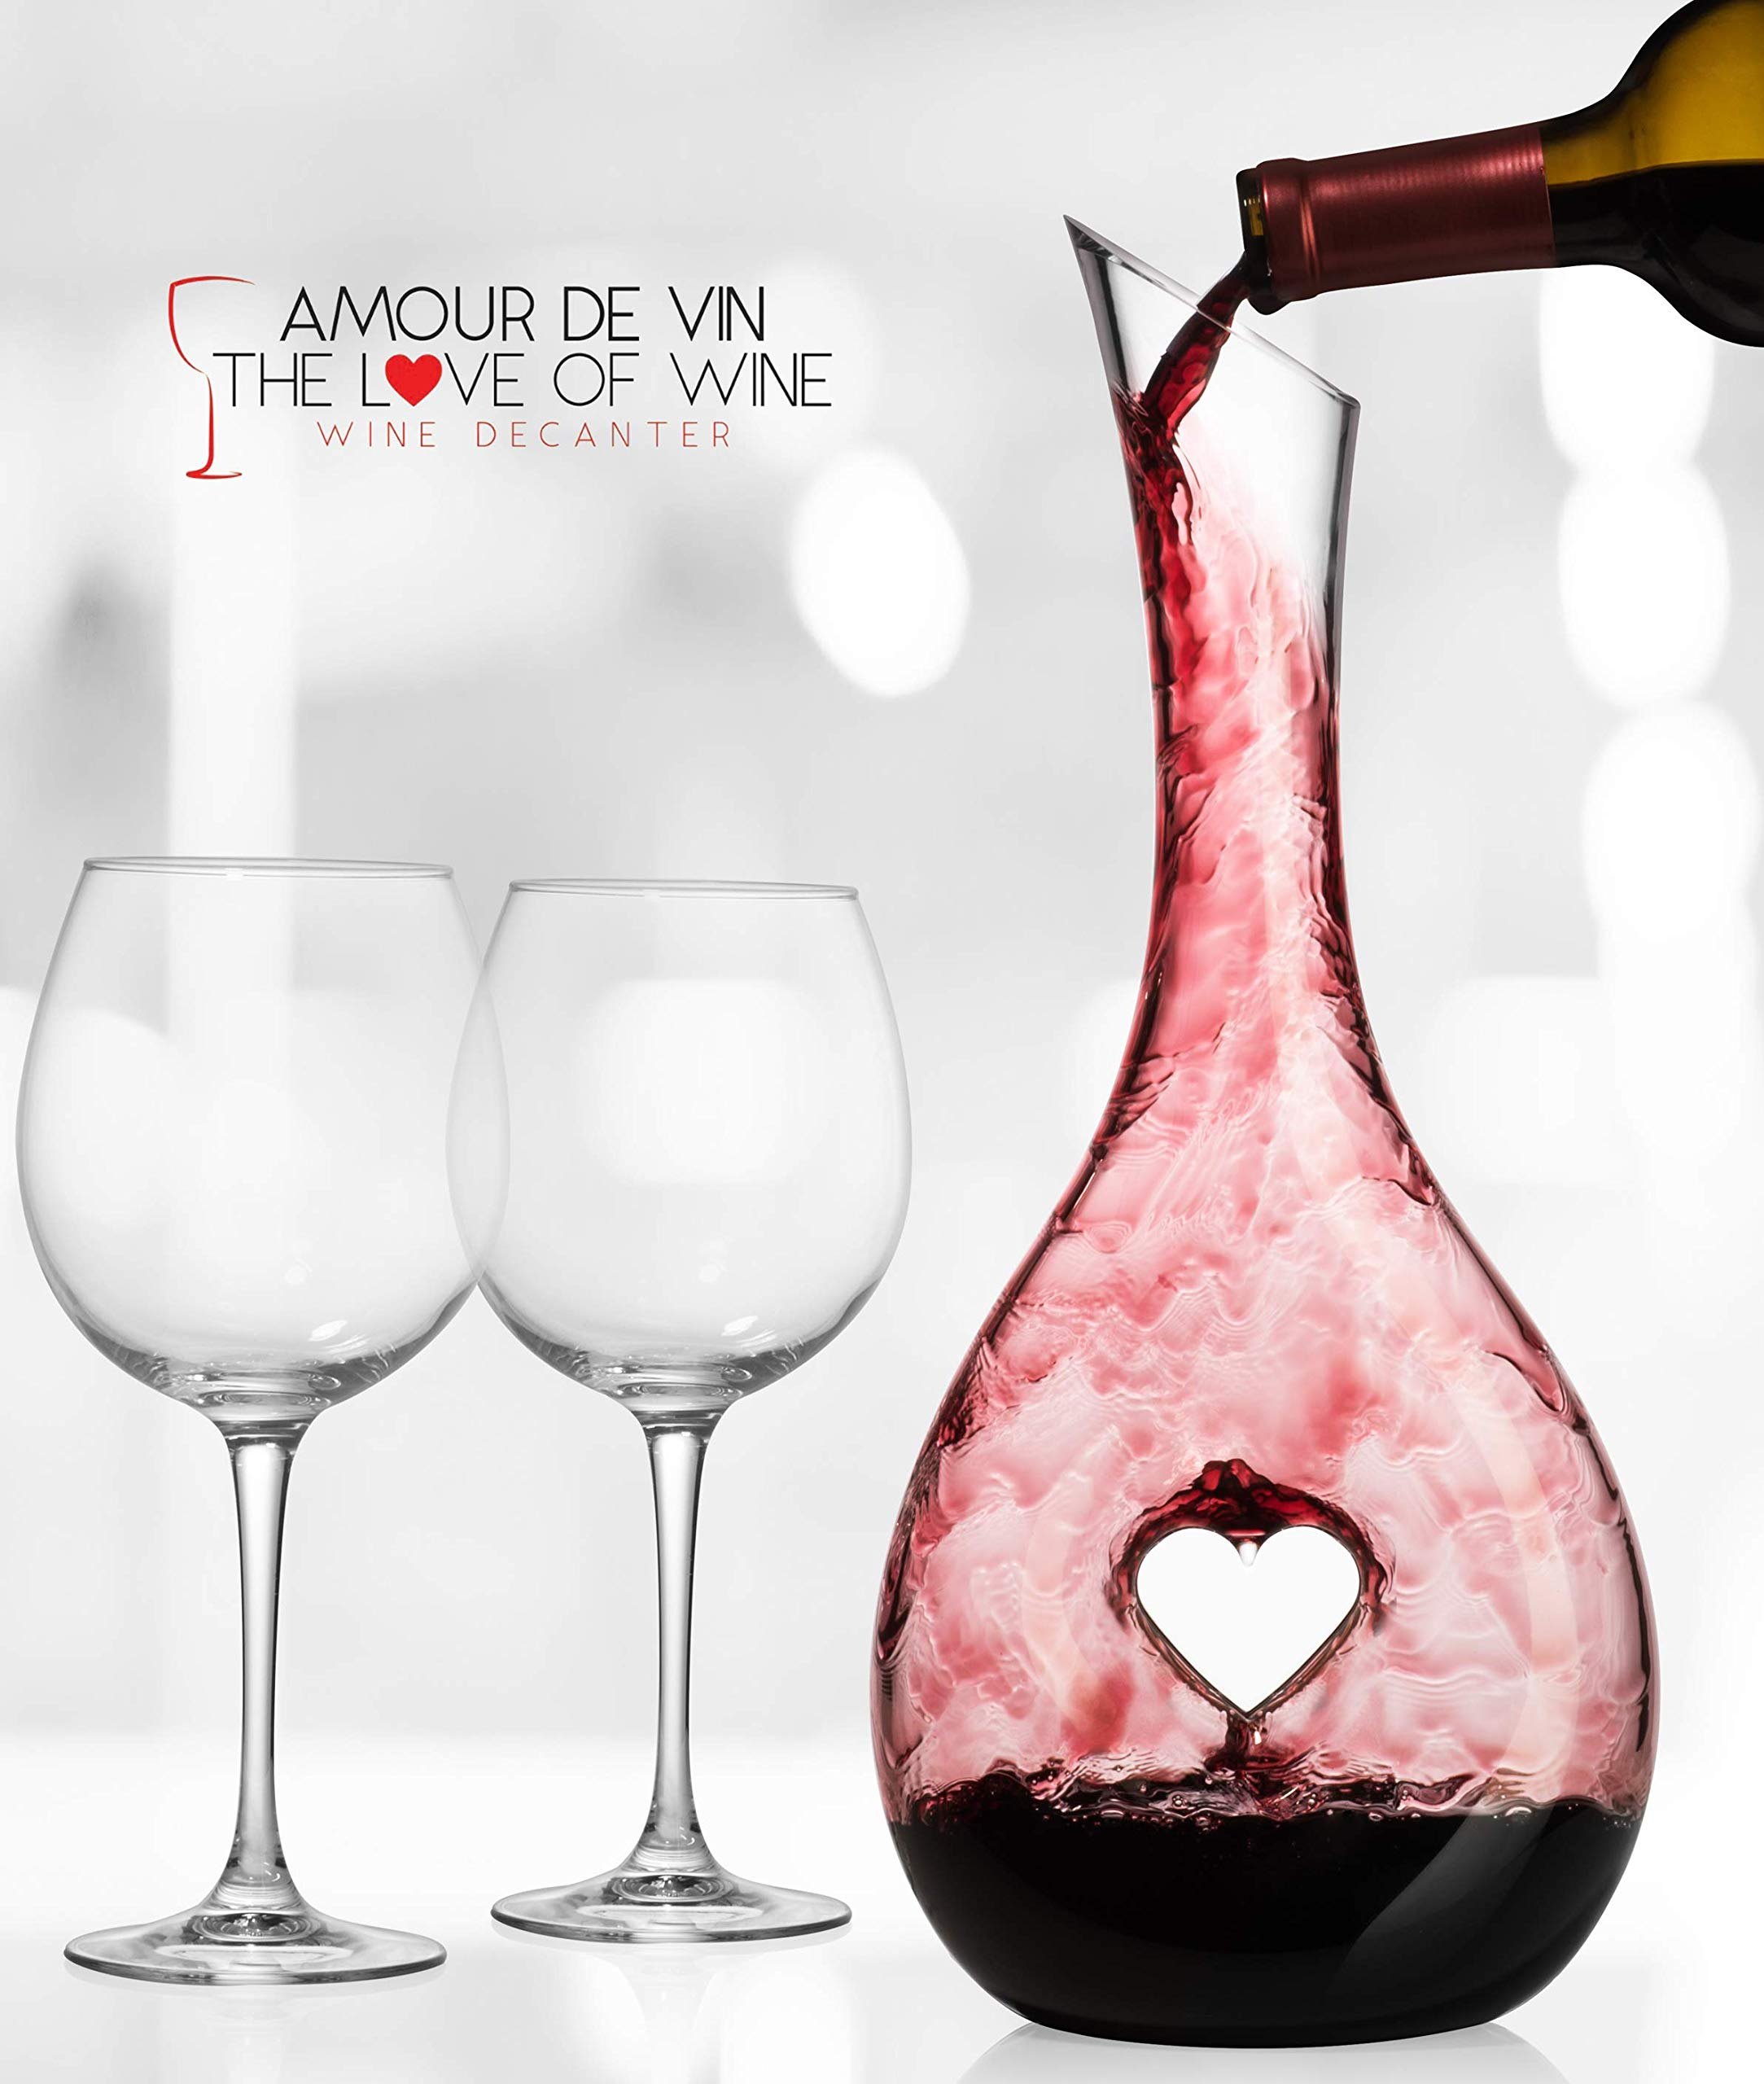 Heart Shaped Wine Decanter - Amour De Vin - 100% Hand Blown Lead-free Crystal Glass, Red Wine Carafe, Wine Gift, Wine Accessories, Wine Aerator by NatureWorks